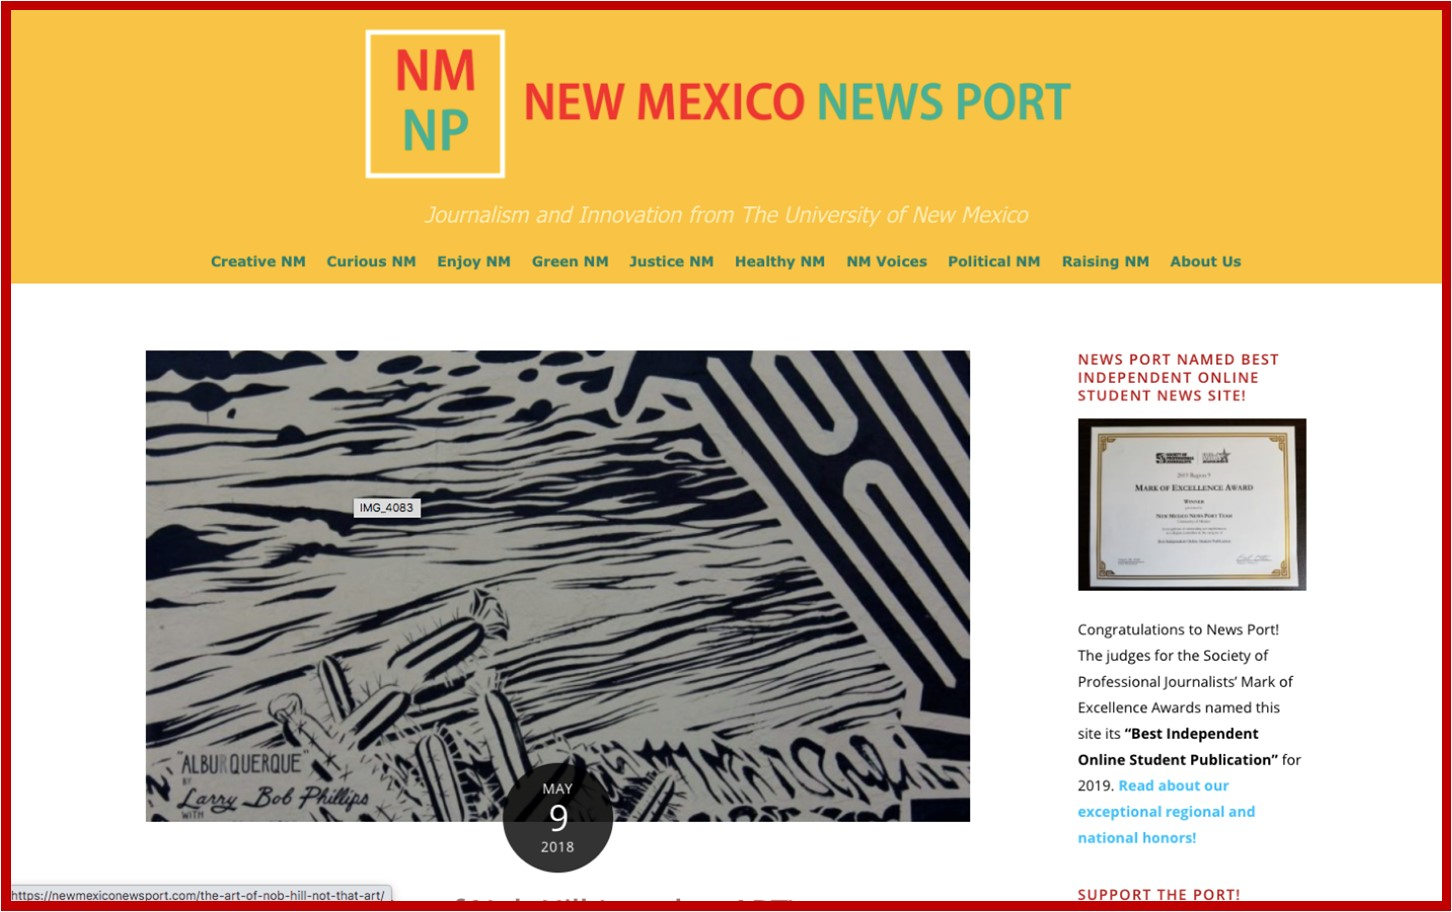 New Mexico News Port